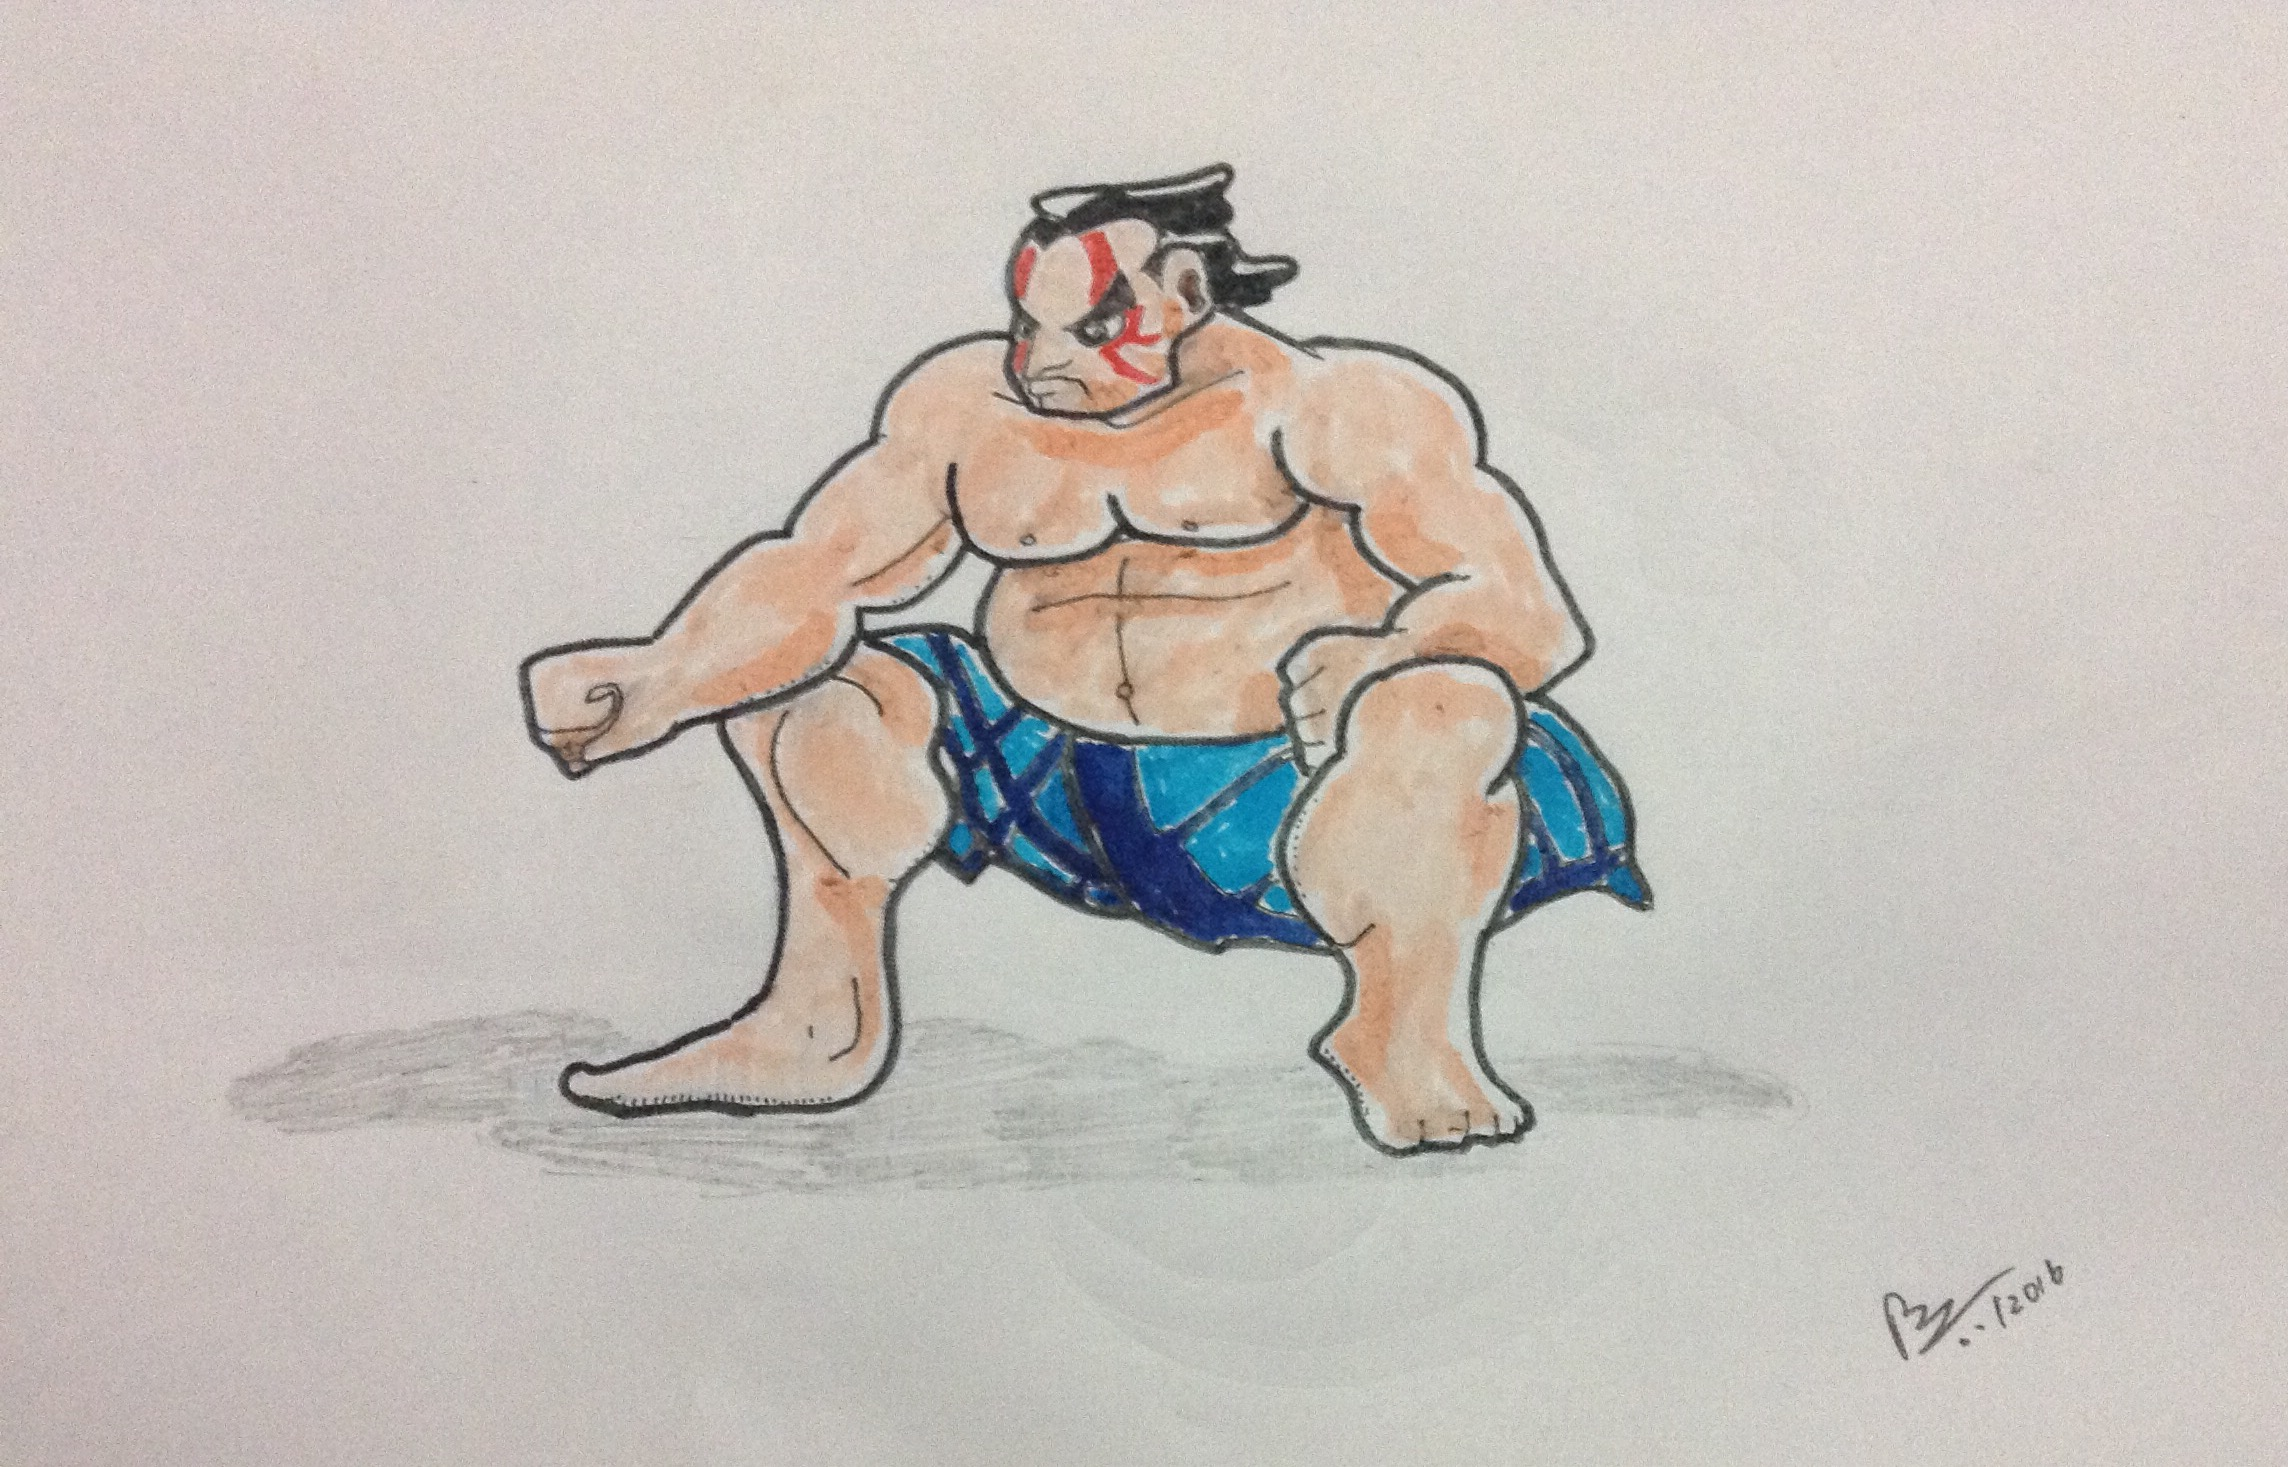 street fighter (the sumo guy)